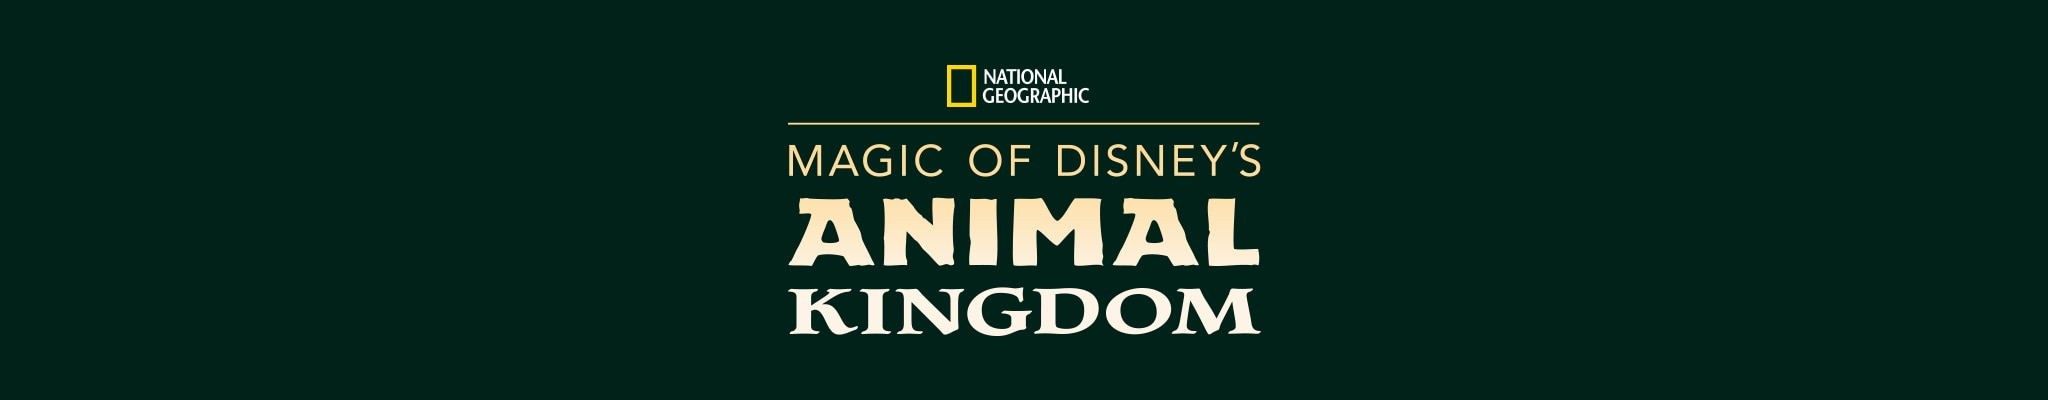 National Geographic | Magic of Disney's Animal Kingdom